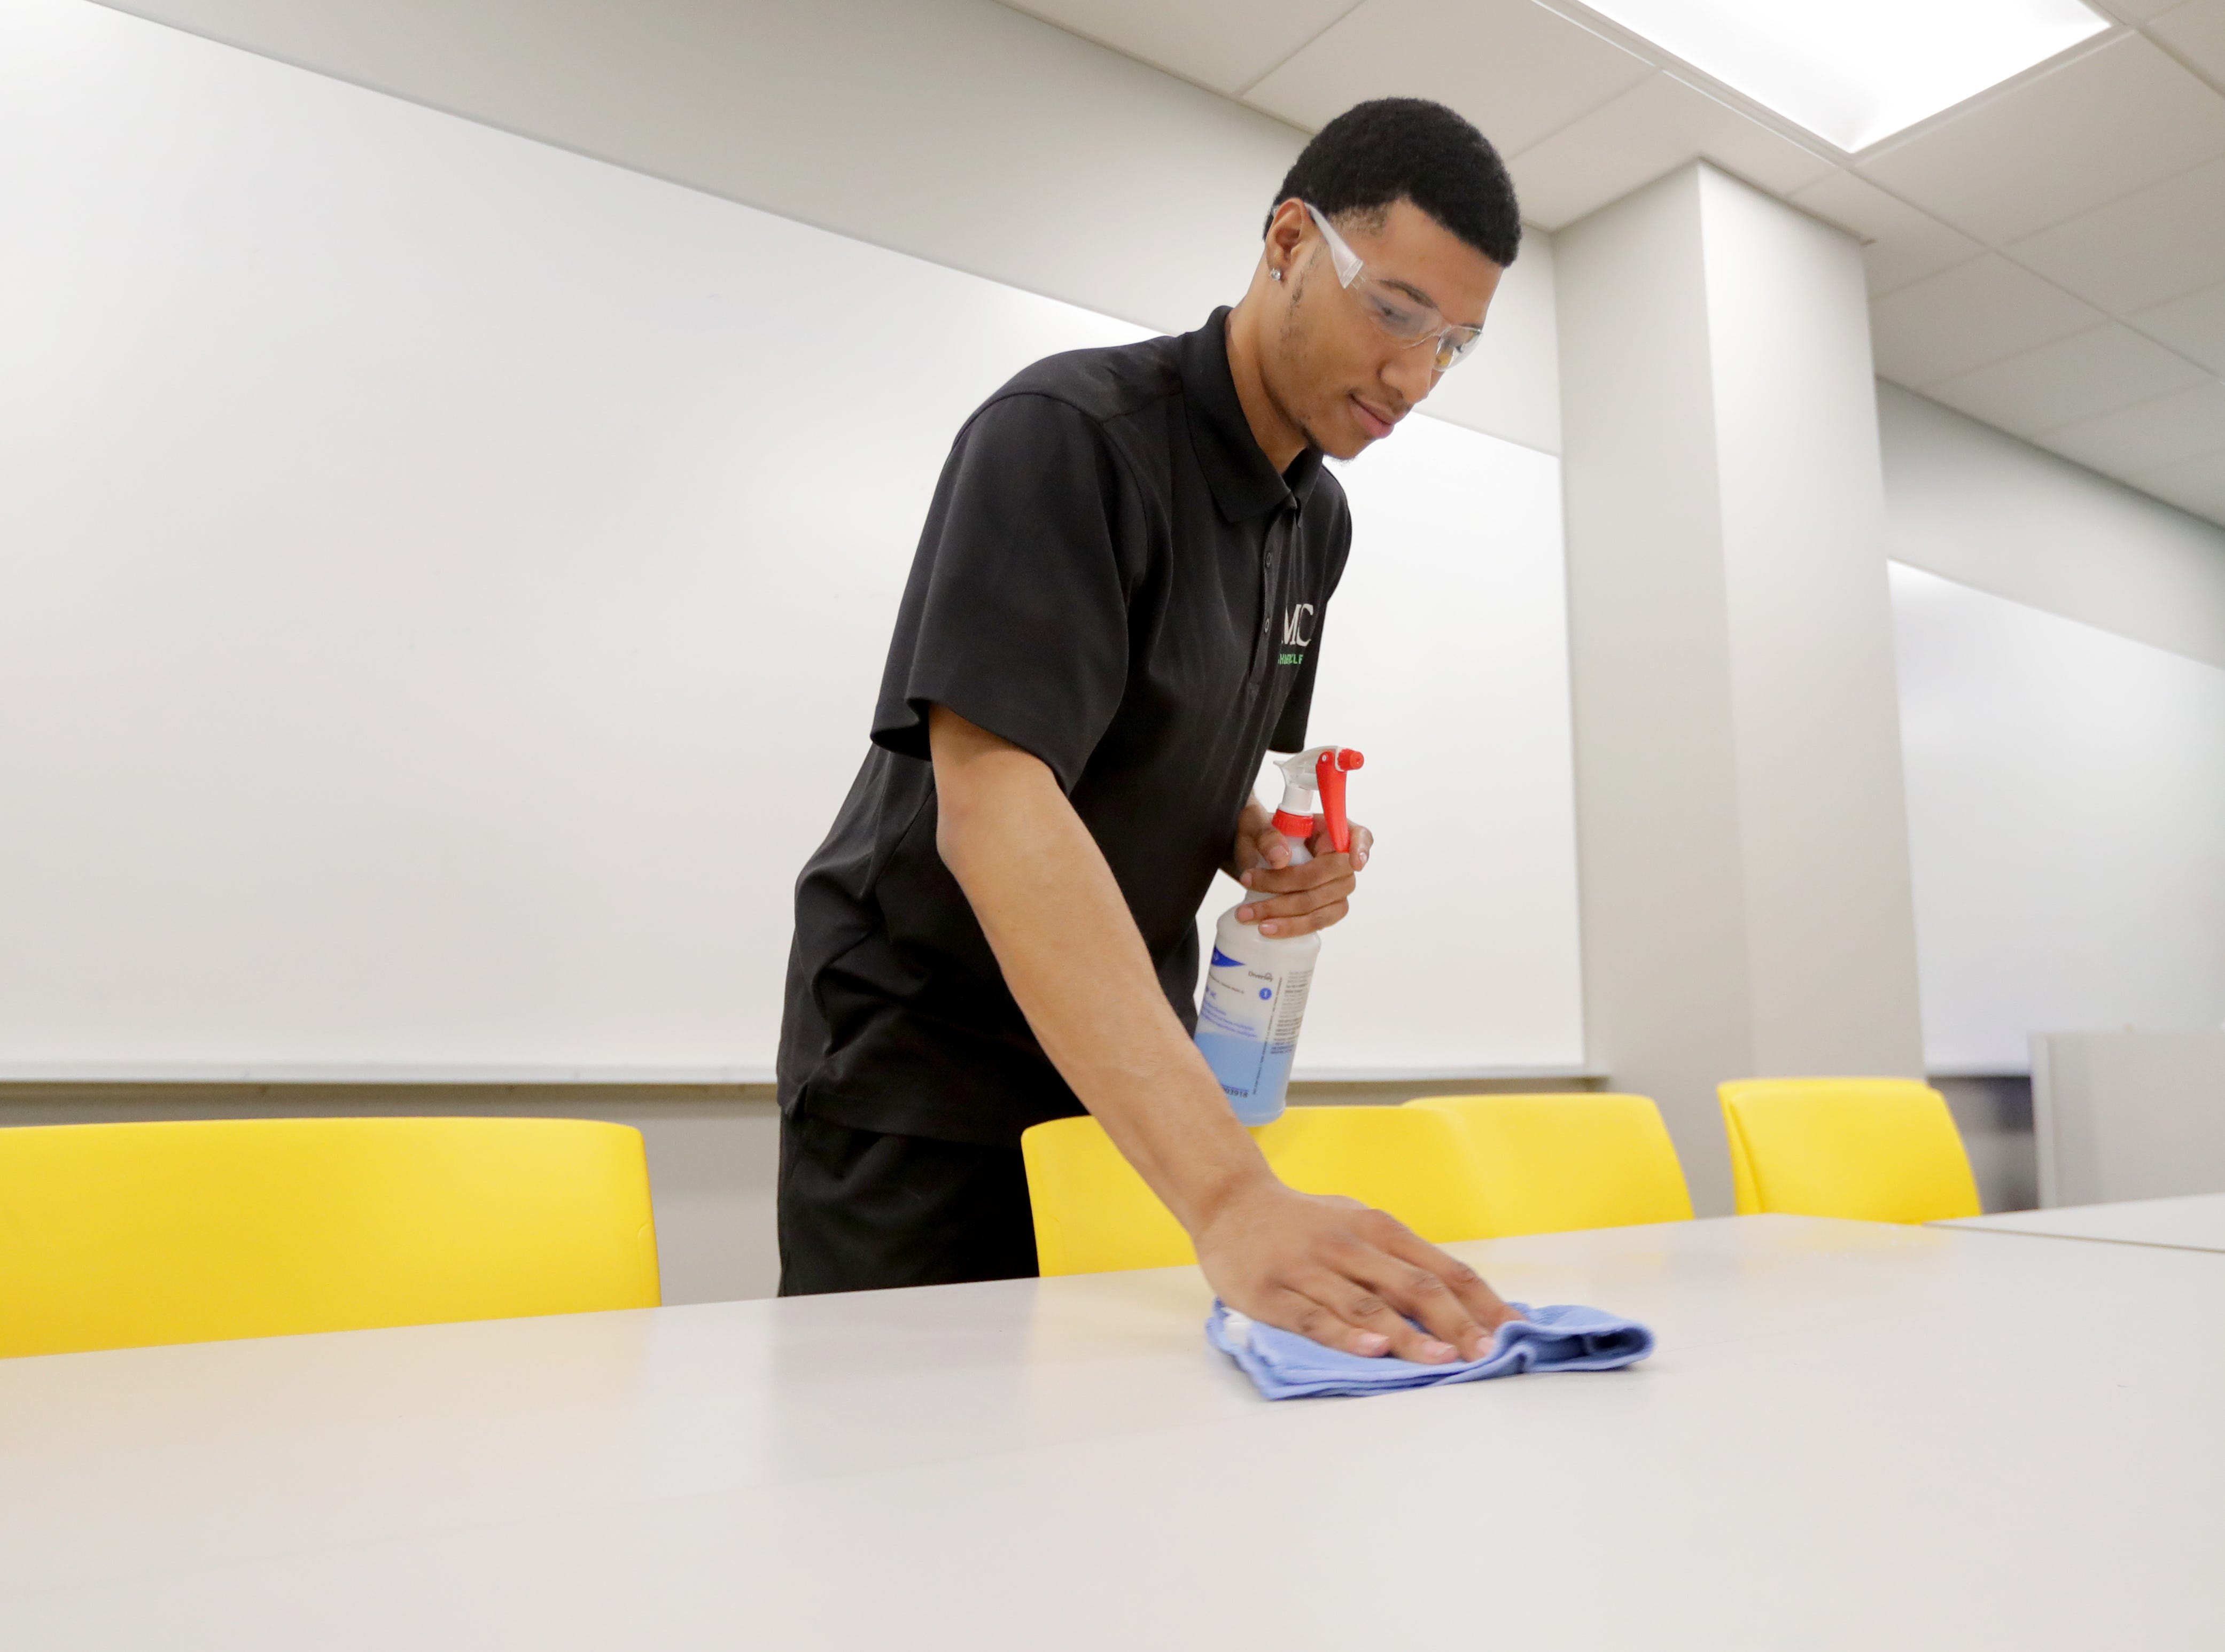 MahlerClean service representative Tercellus Carr wipes down tables after the school day March 11 at St. Augustine Academy on South Fifth Street in Milwaukee.